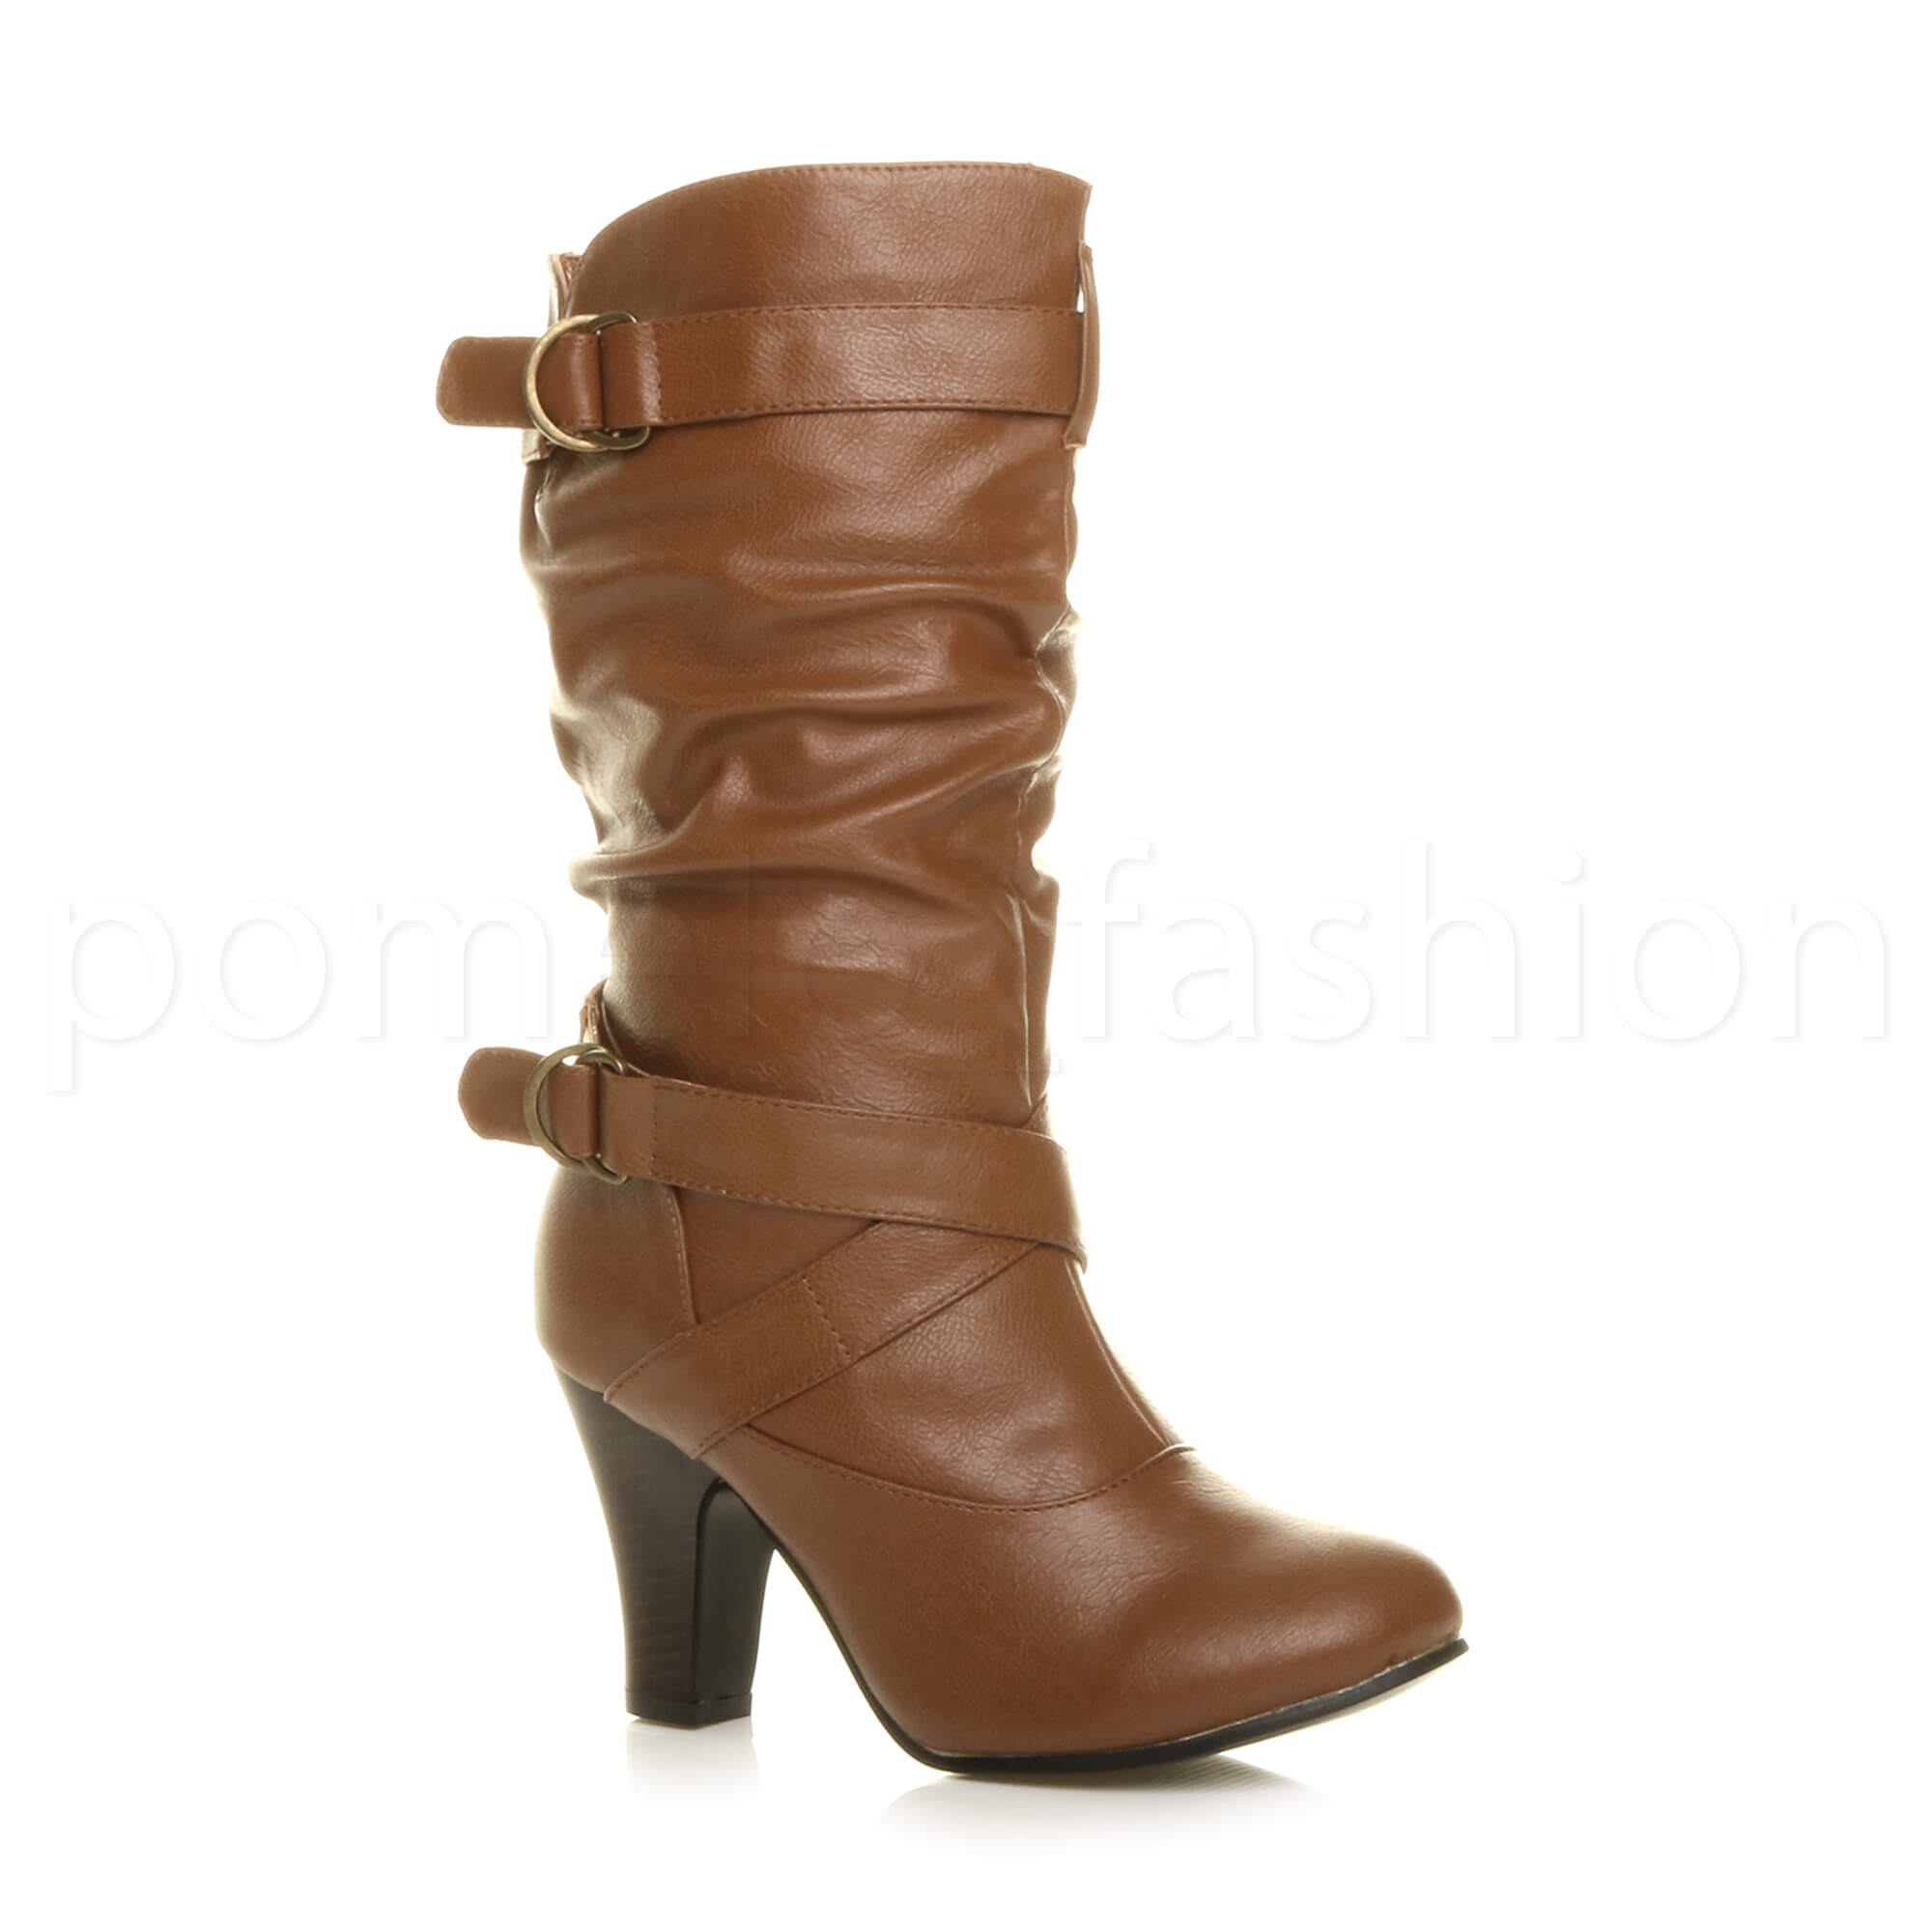 WOMENS-LADIES-HIGH-BLOCK-HEEL-BUCKLE-STRAPS-SMART-CALF-RUCHED-SLOUCH-BOOTS-SIZE